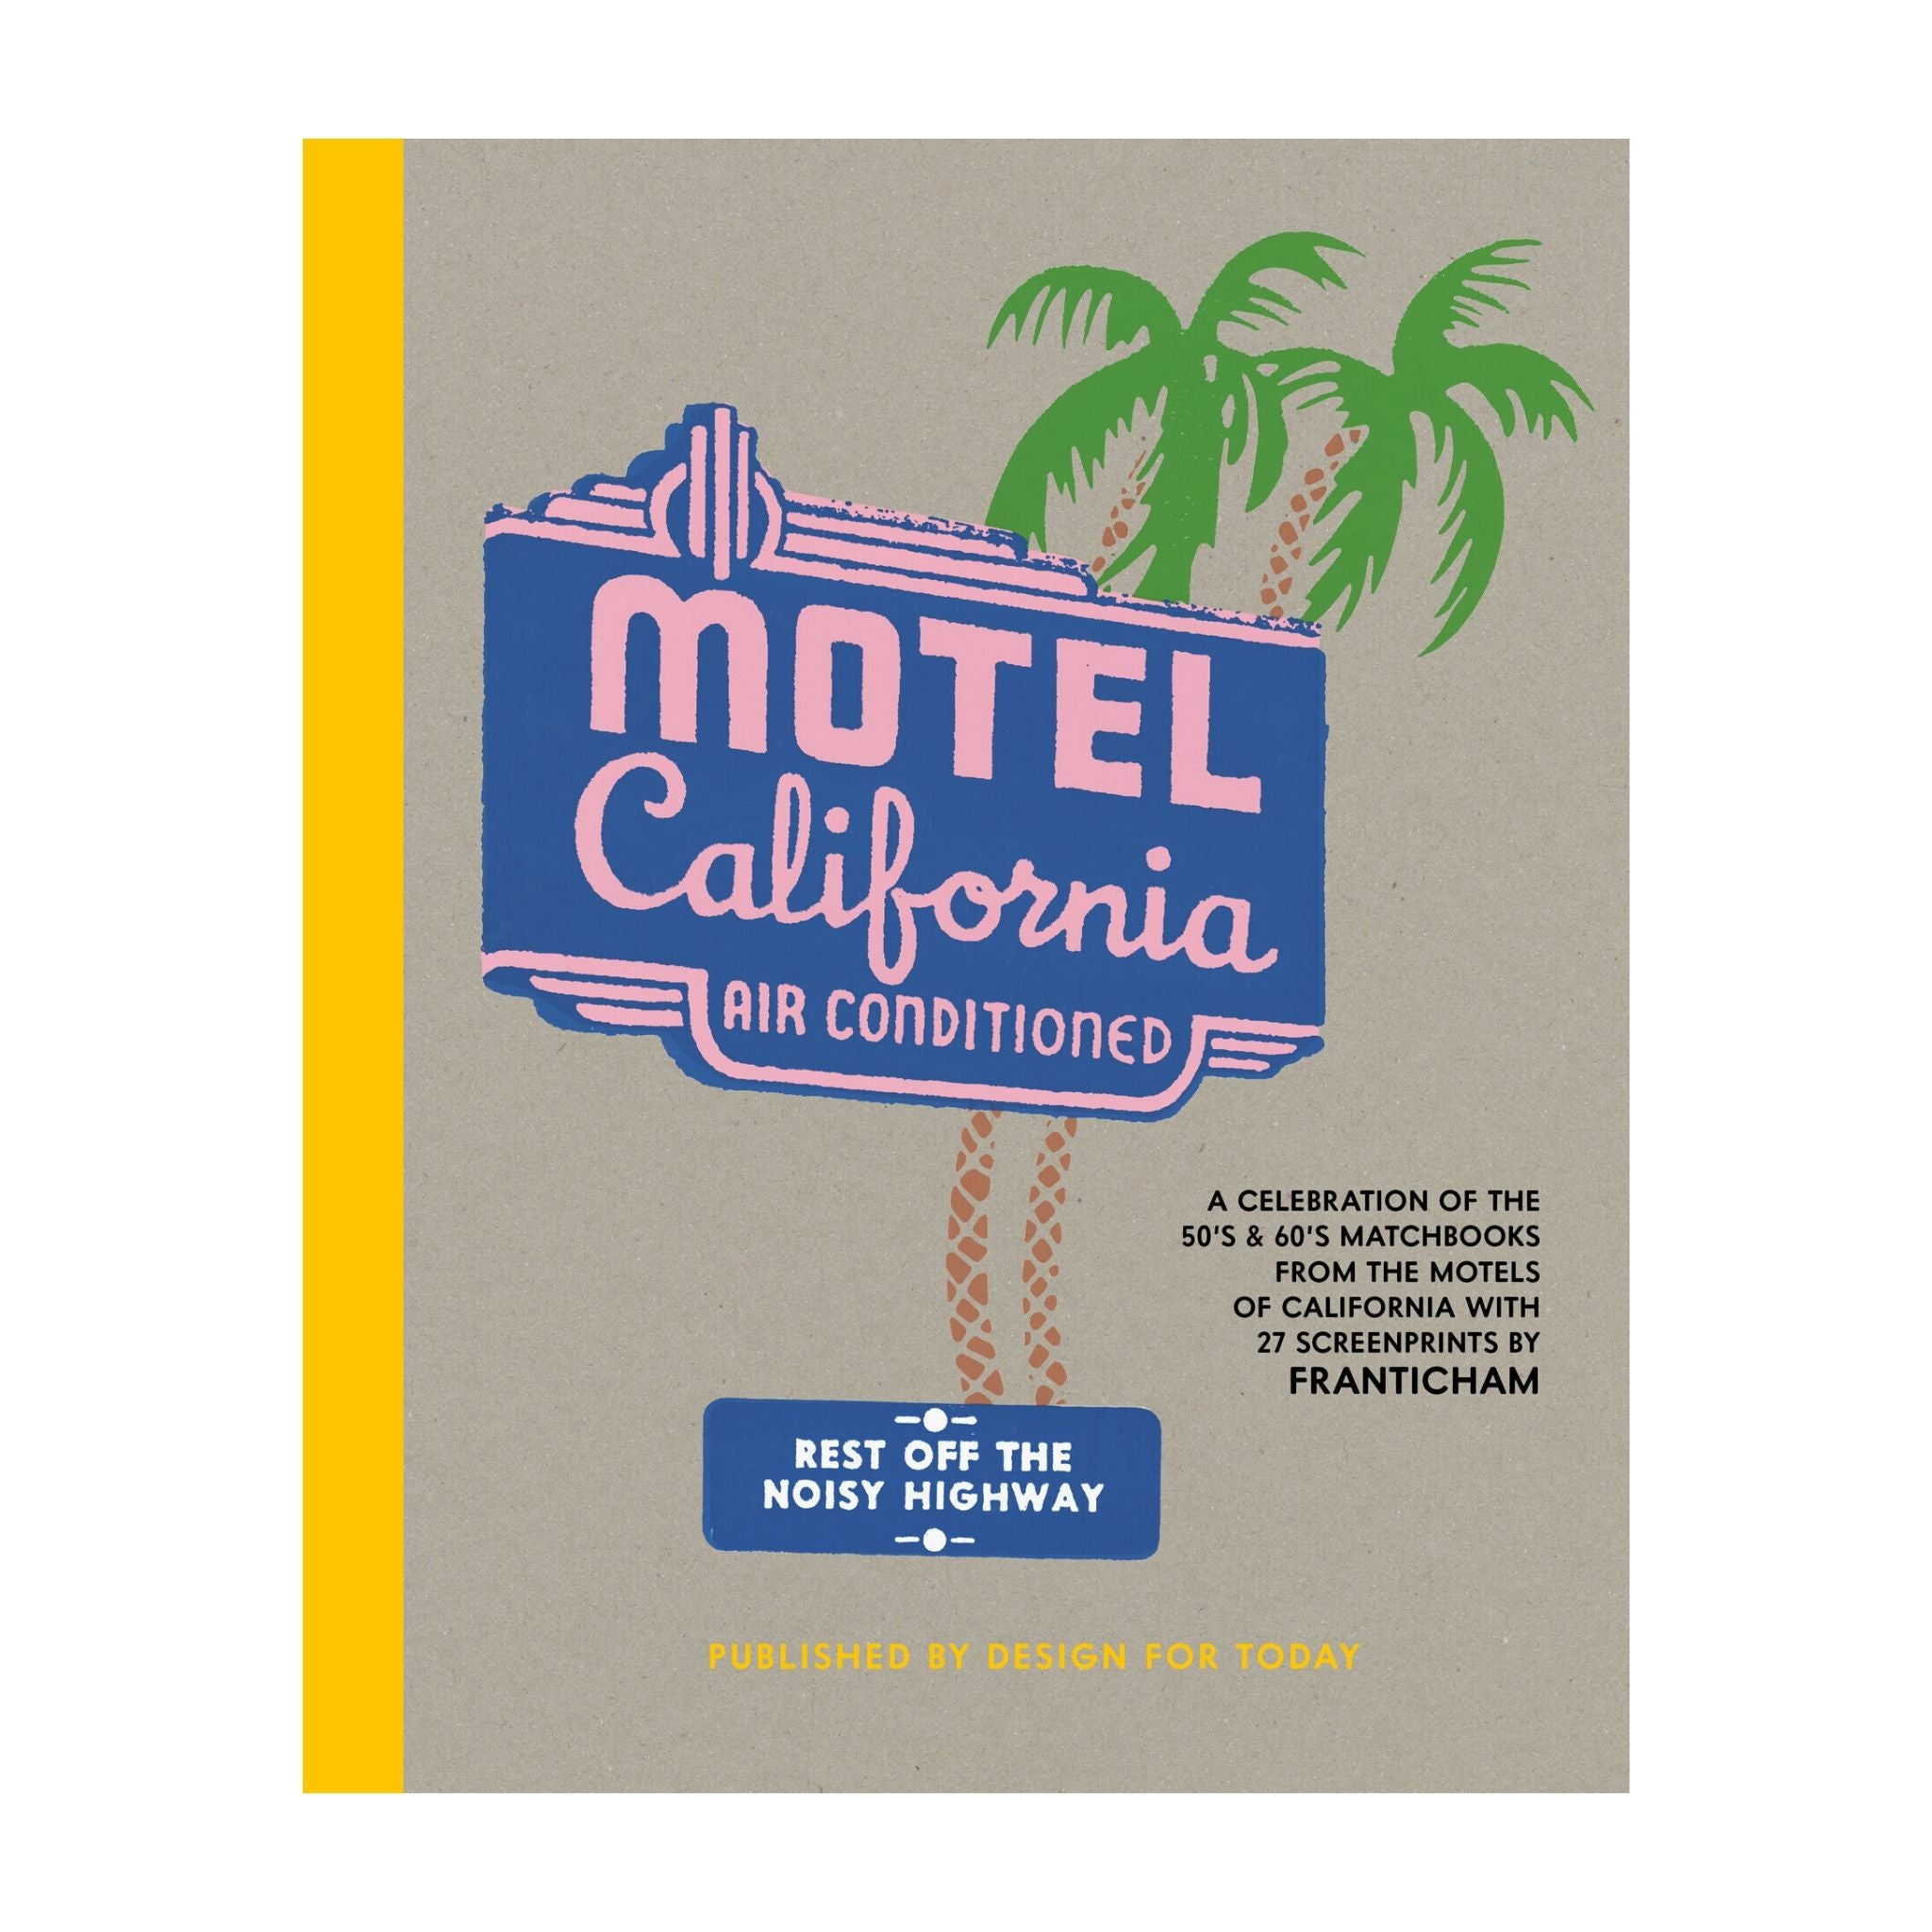 Welcome to The Motel California